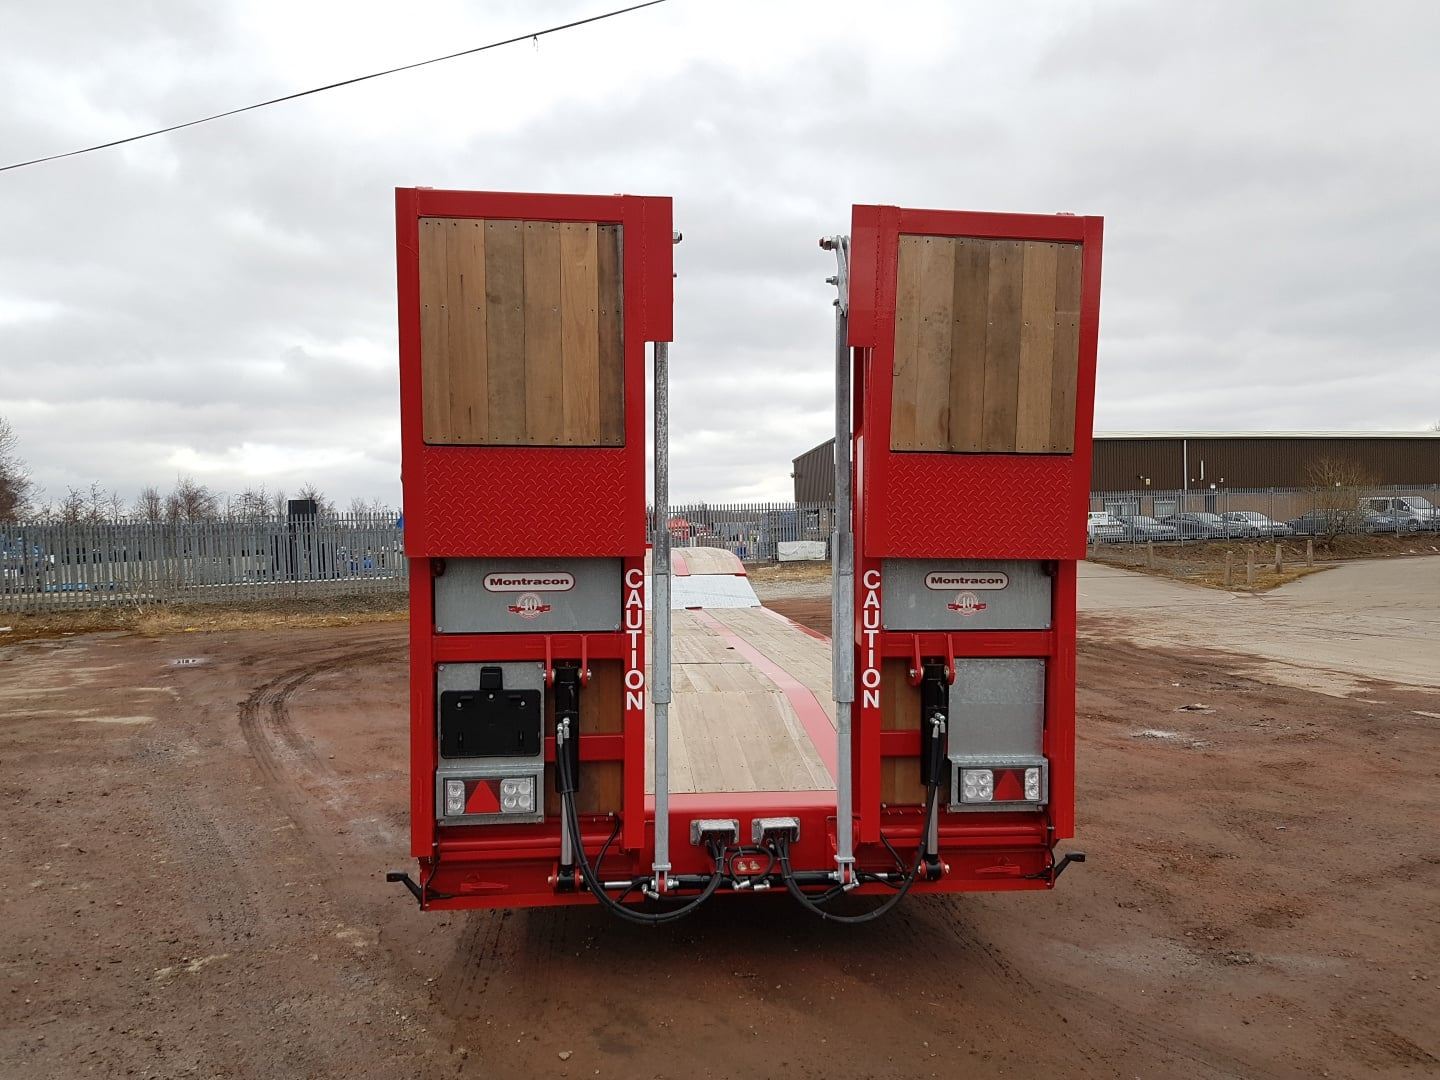 Brand New Montracon Step Frame Machinery Carrier Asset